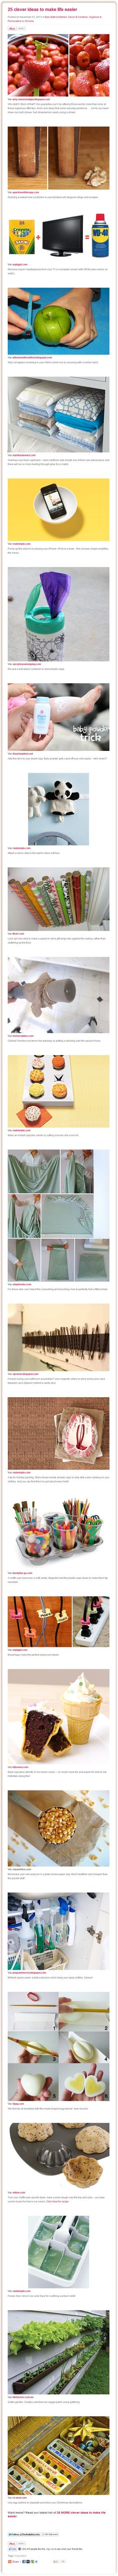 25 Clever, Clever Ideas